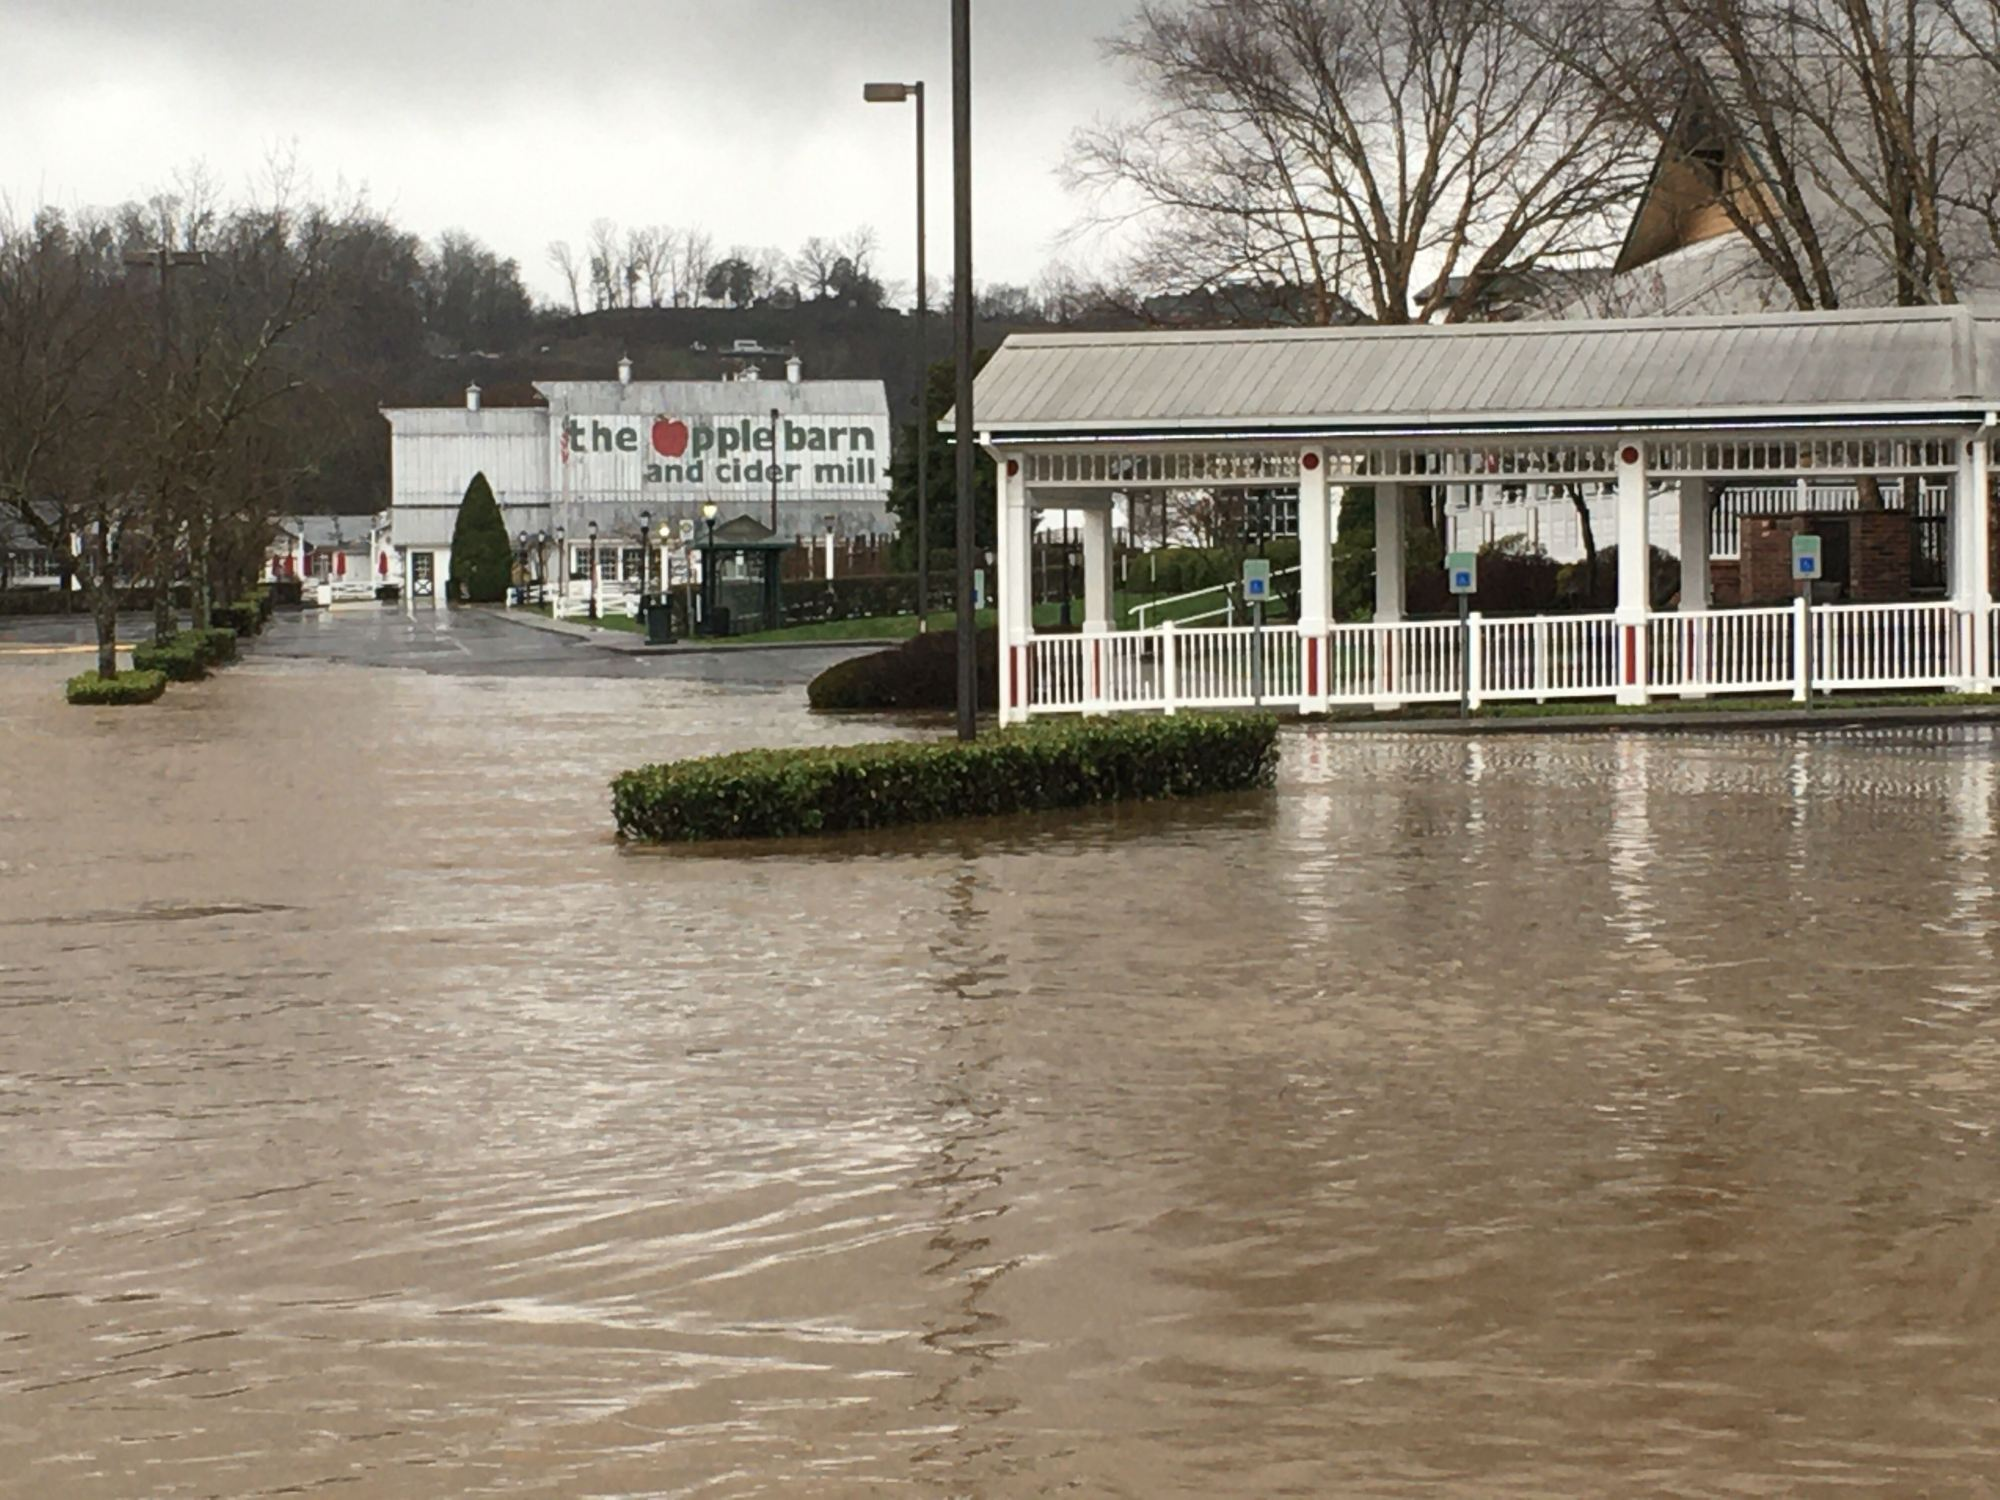 PHOTOS: Flooding in East Tennessee - February 2020 | WATE ...